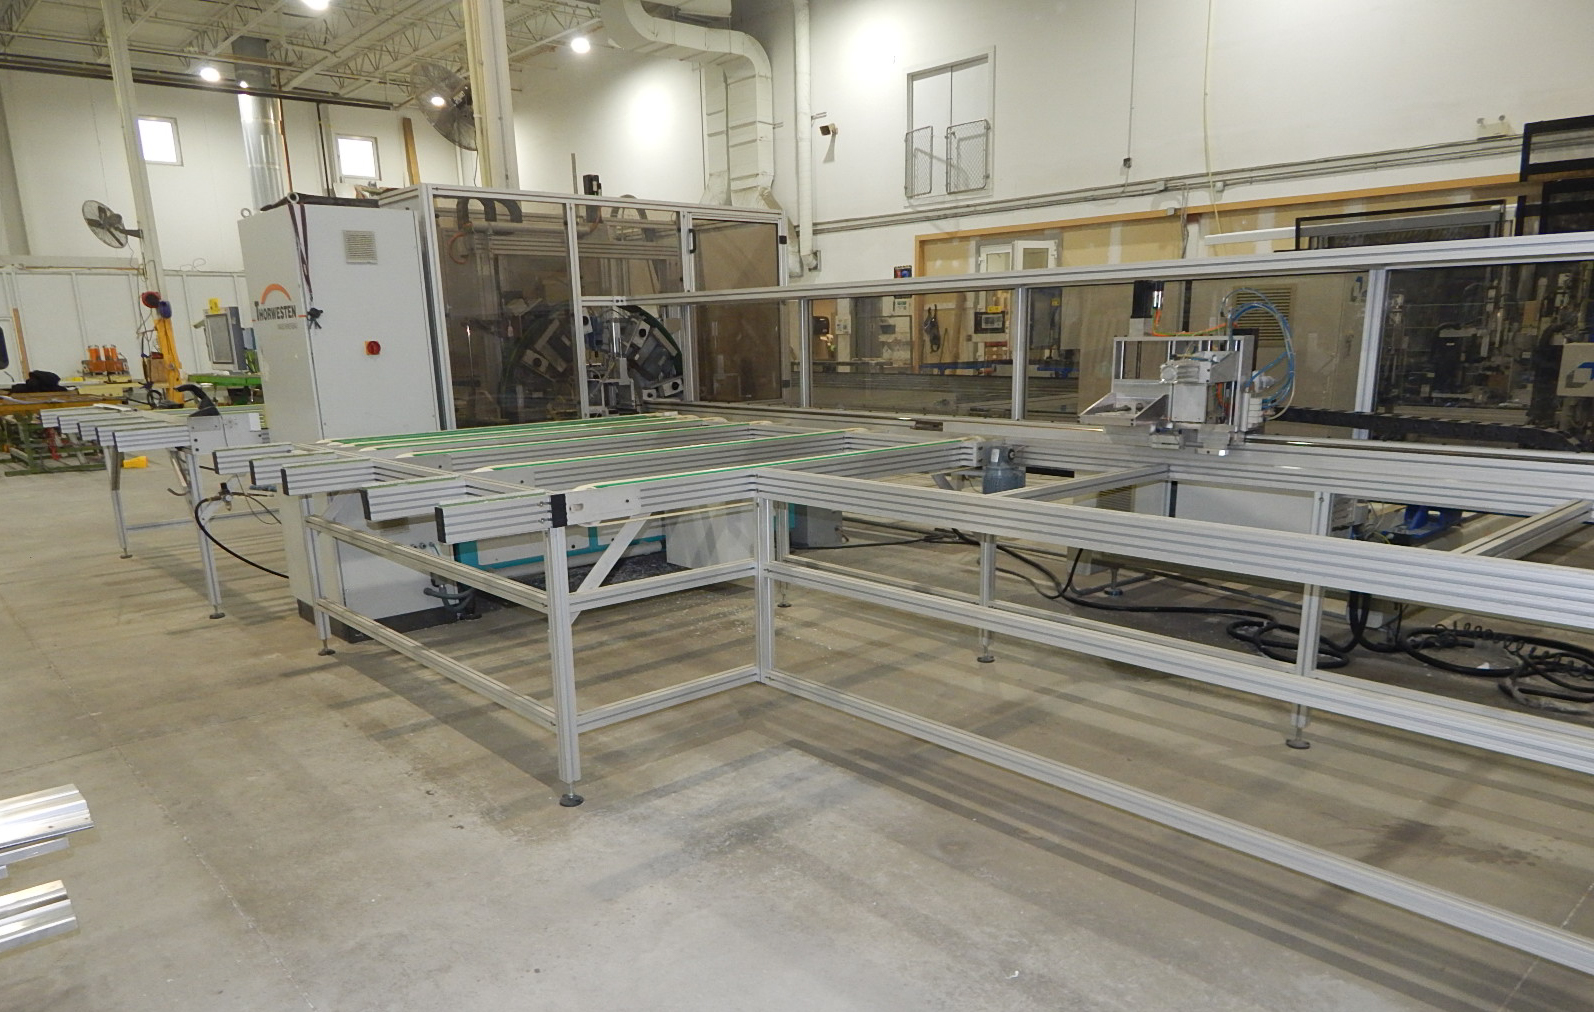 THORWESTERN (2008) PBZ-3 CNC PROFILE MACHINING CENTER WITH WINDOWS PC BASED AR010 TOUCH SCREEN CNC - Image 9 of 9